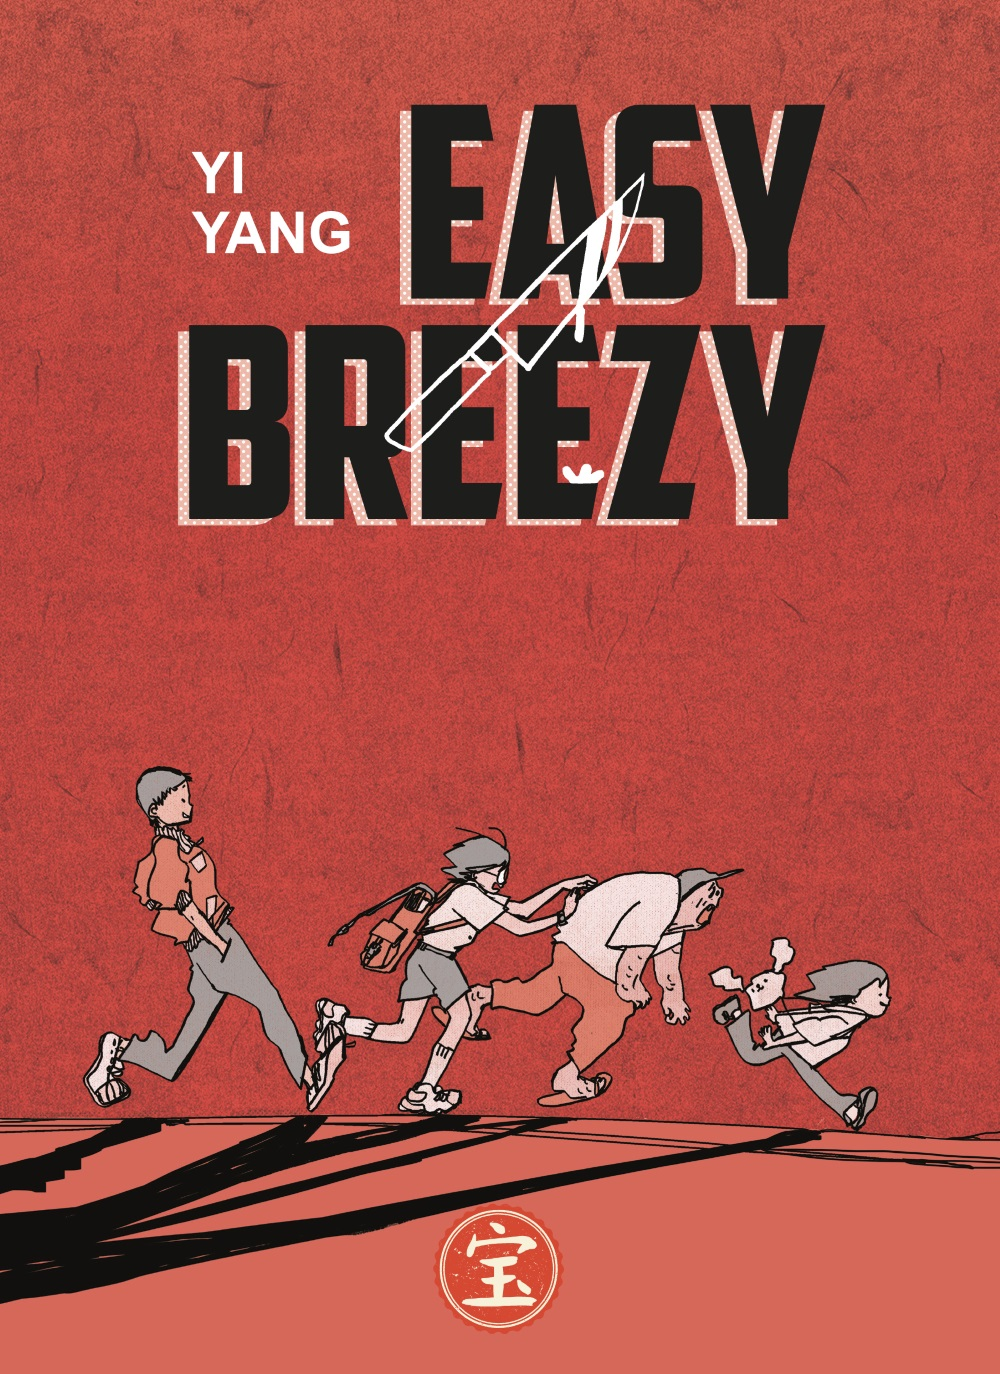 Easy Breezy Yi Yang Bao Publishing